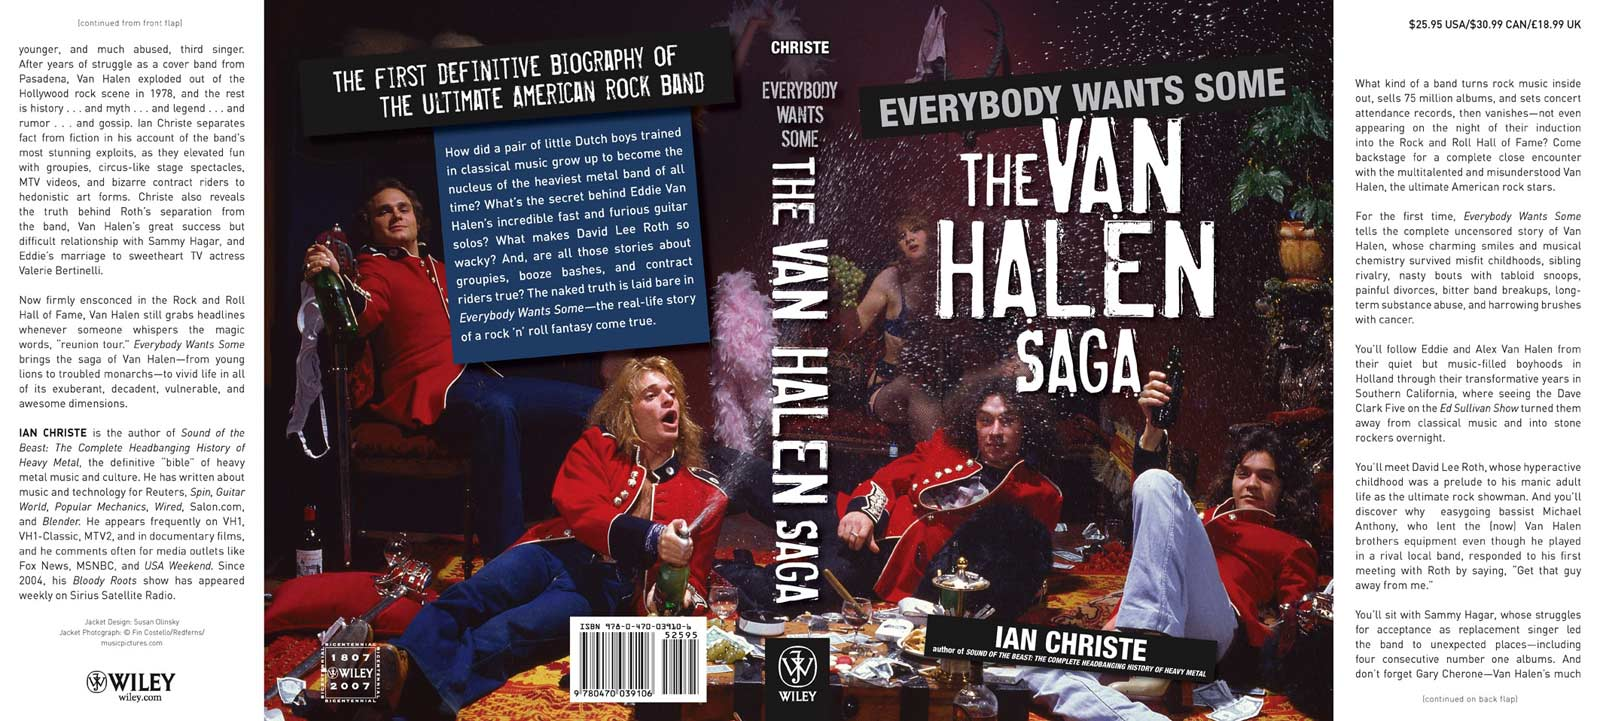 Everybody Wants Some - Draft of Dust Jacket